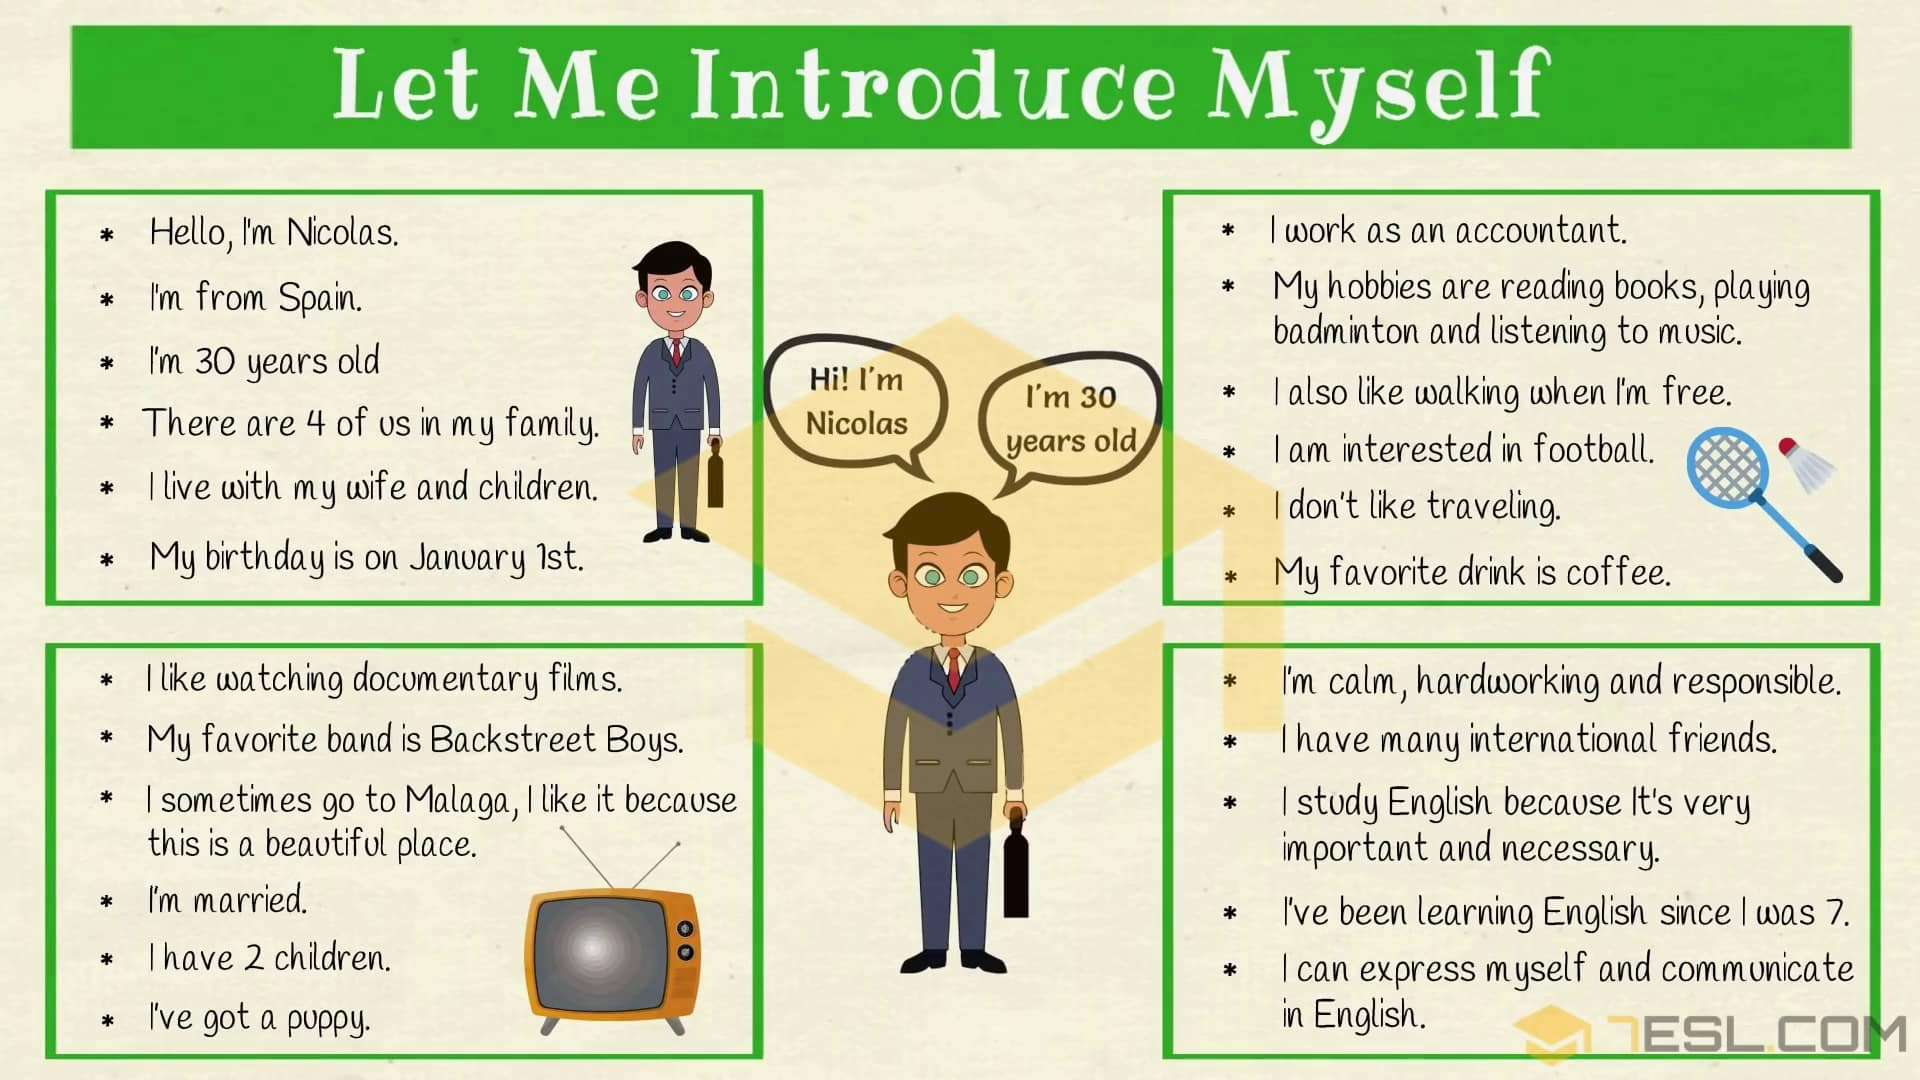 Introduce Myself In English For Job Interview Example - Job Retro